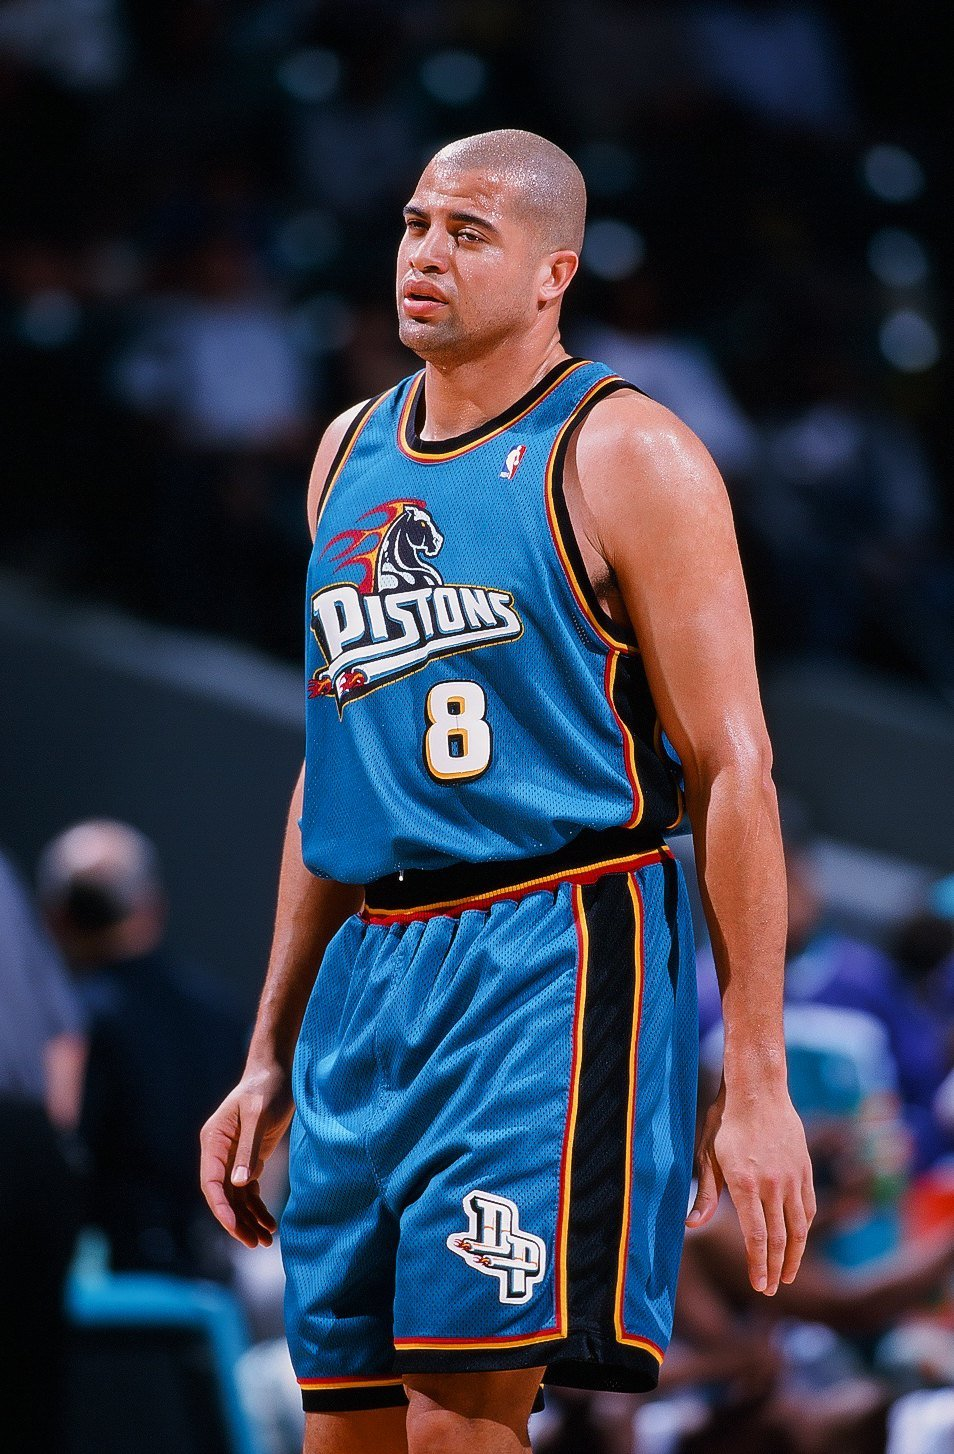 Bison Dele playing for the Detroit Pistons in the late '90s   Photo: Getty Images